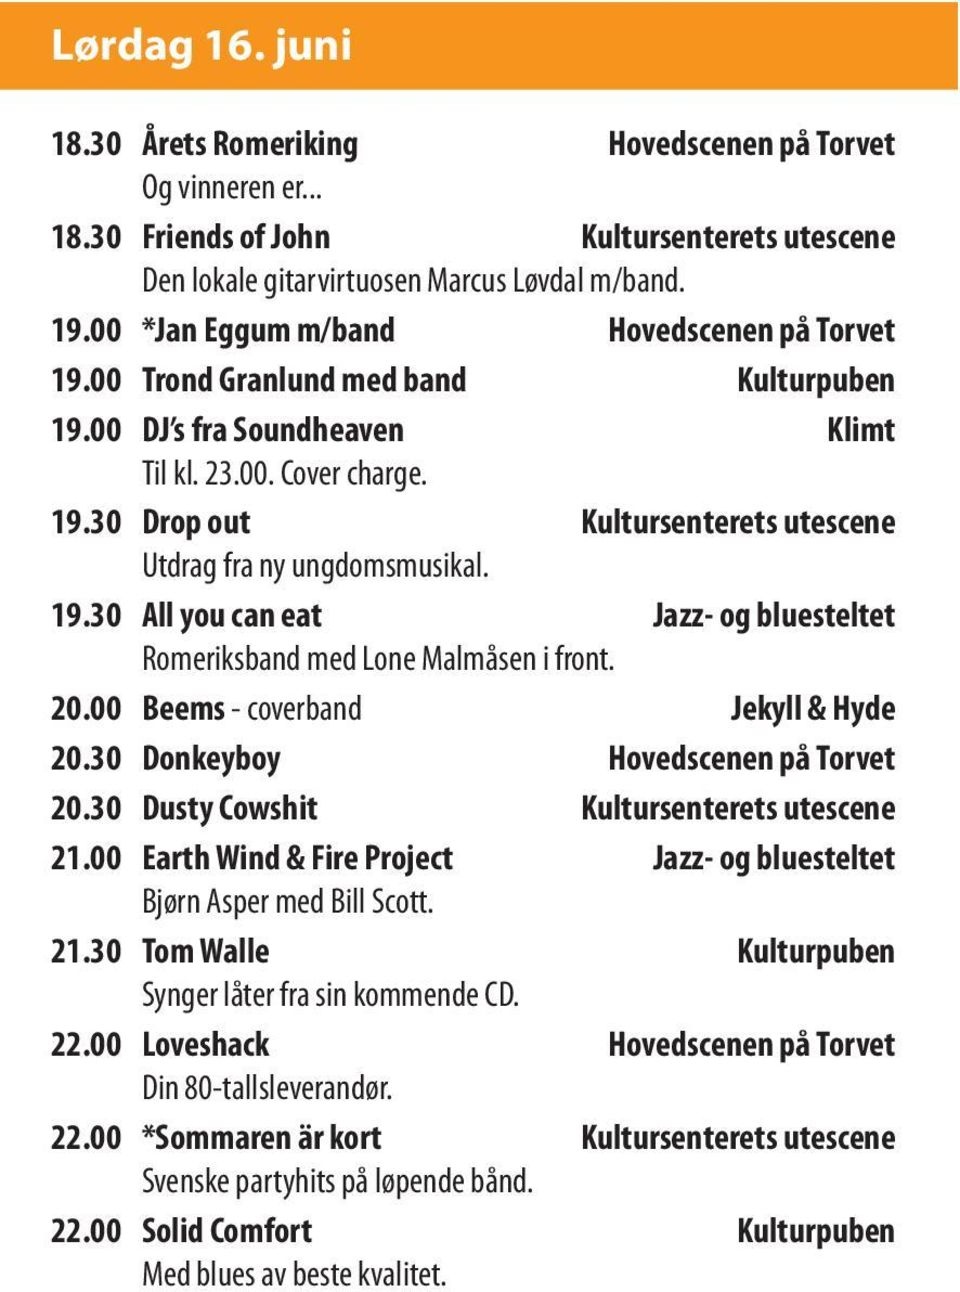 19.30 All you can eat Jazz- og bluesteltet Romeriksband med Lone Malmåsen i front. 20.00 Beems - coverband Jekyll & Hyde 20.30 Donkeyboy Hovedscenen på Torvet 20.